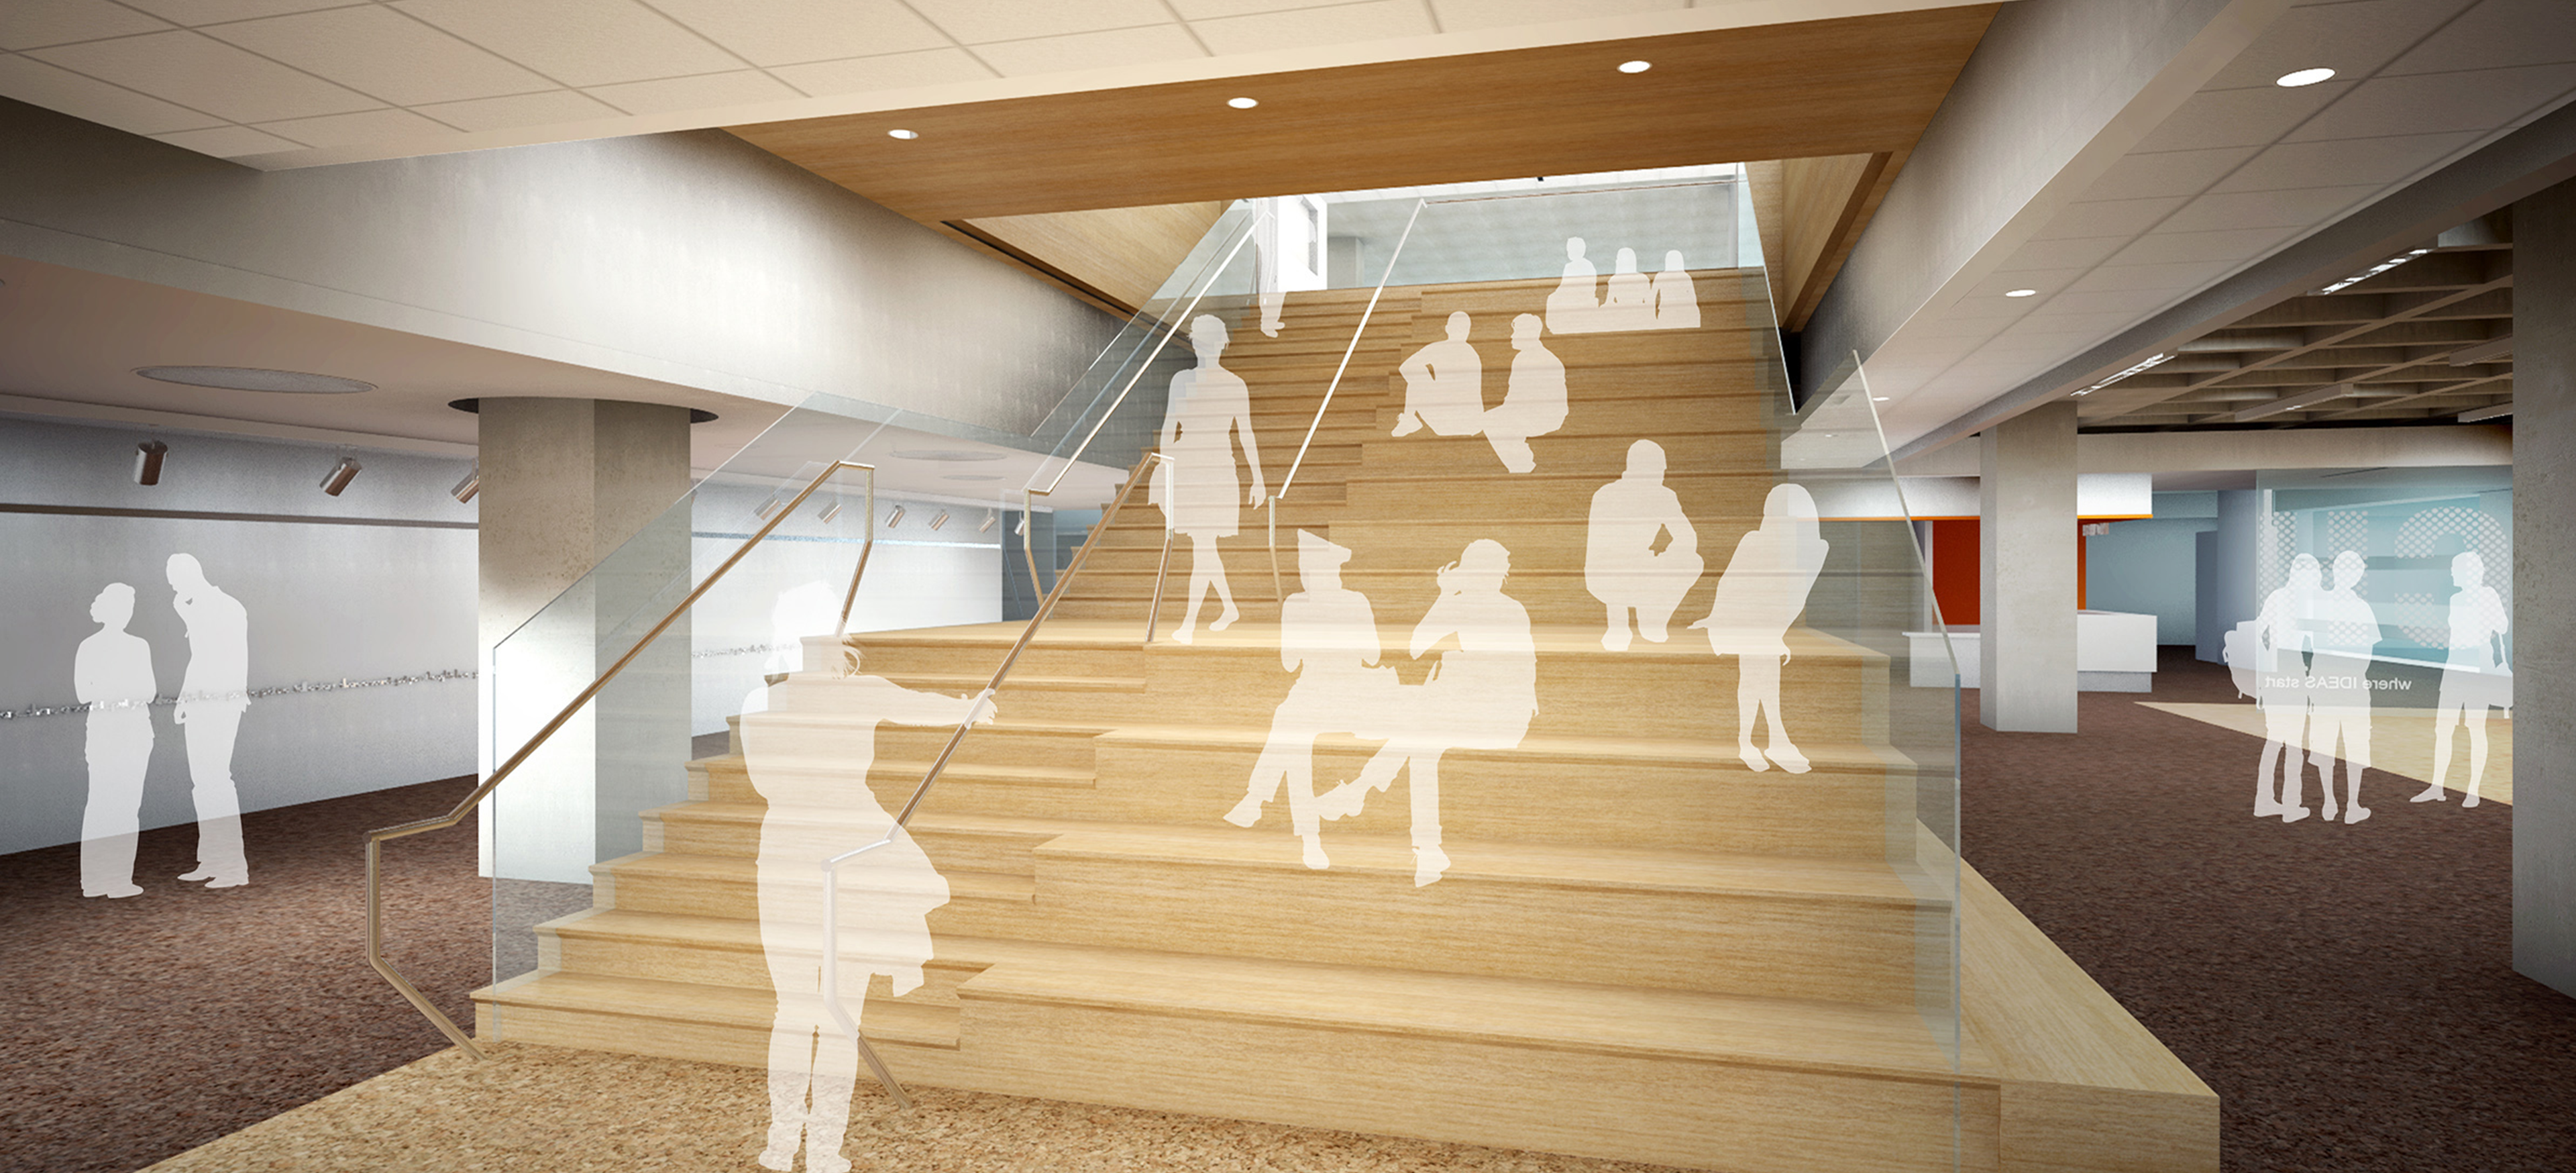 Education and Workplace Design Trends Looking to Lifelong Learning